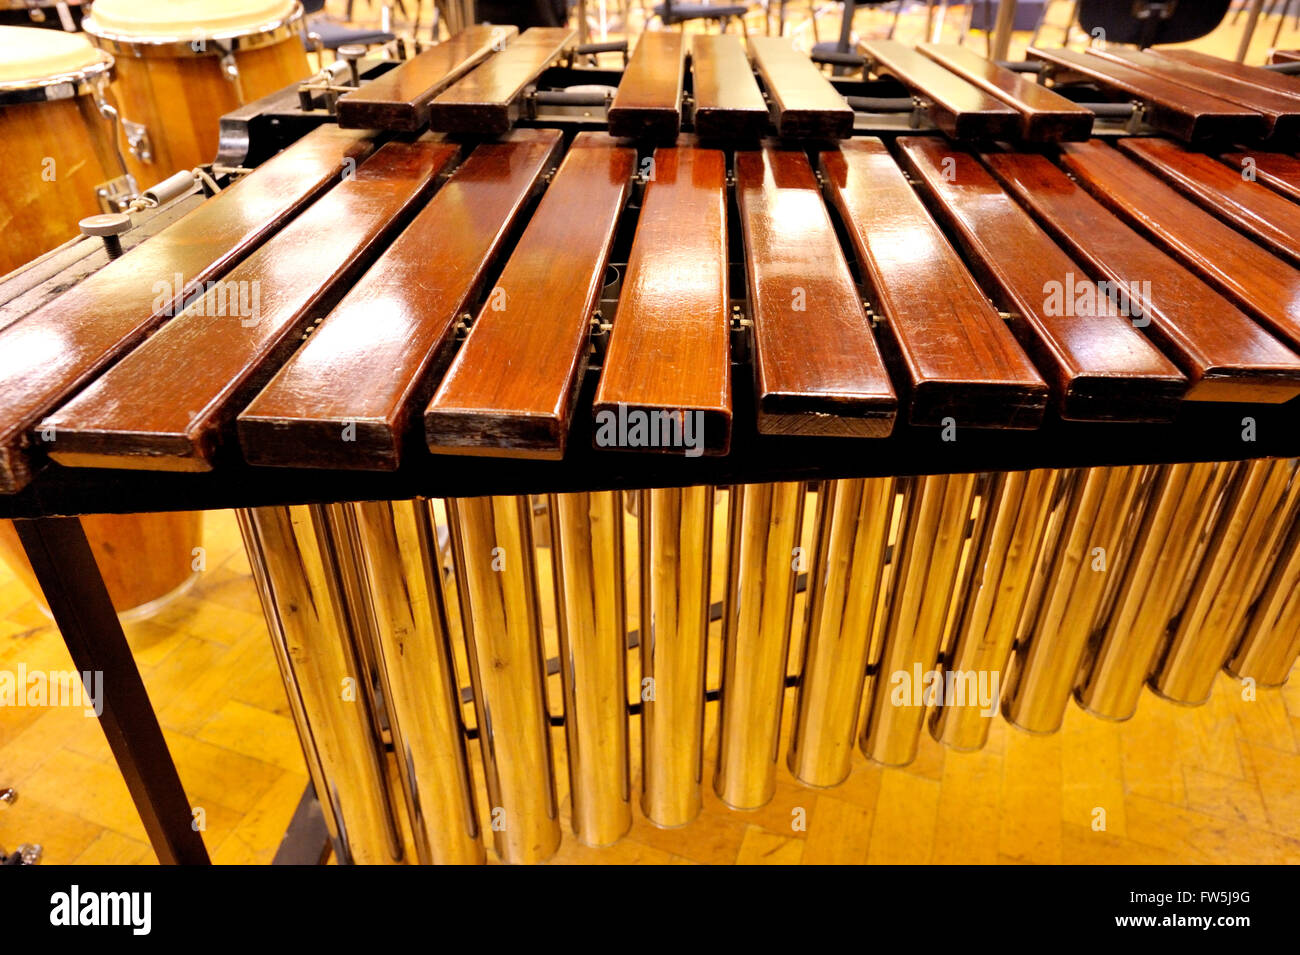 close-up of marimba, a Latin American tuned percussion intrument struck with mallets, consisting of blocks of mahogany - Stock Image